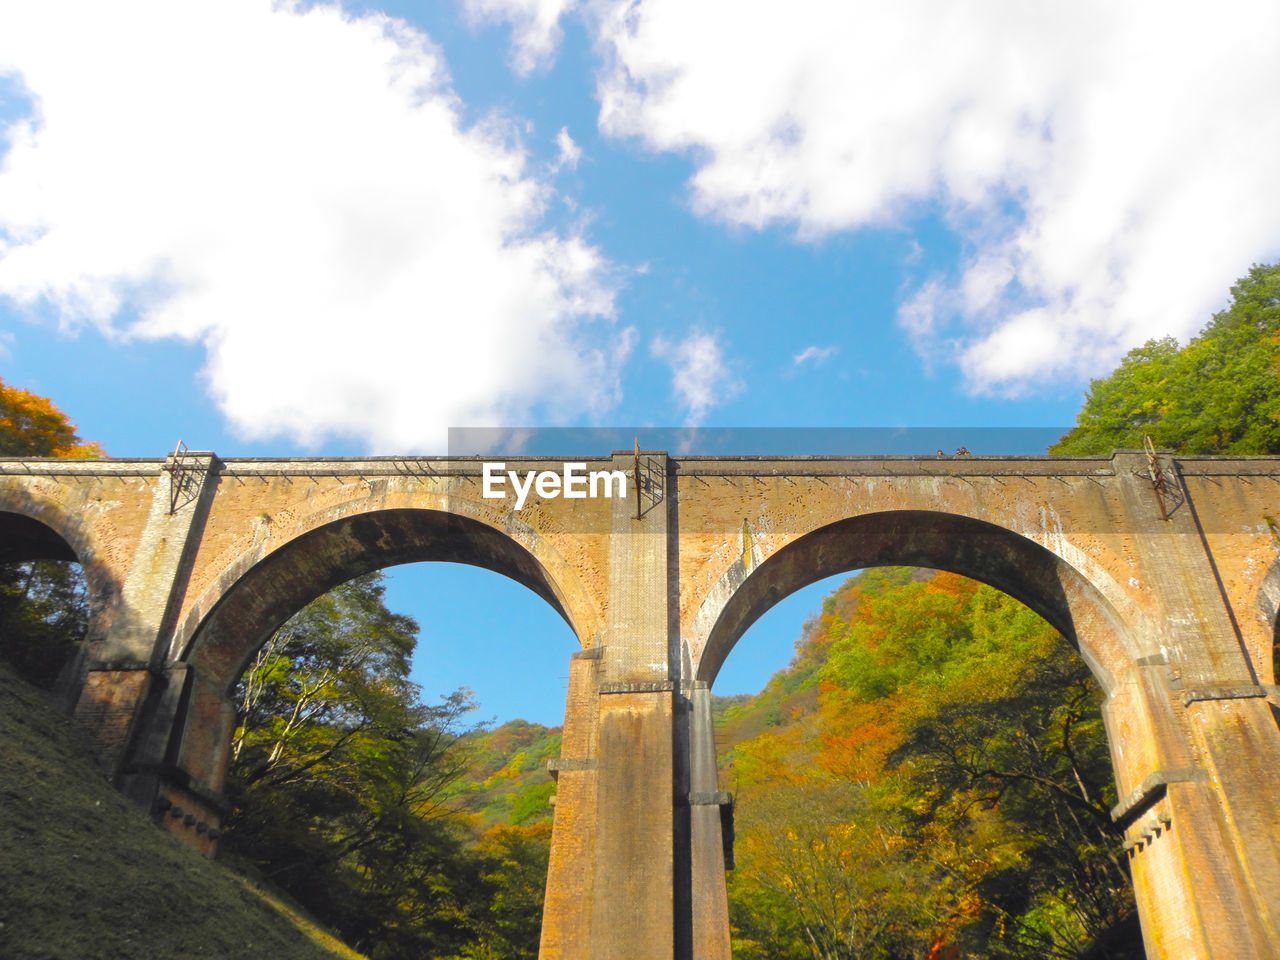 arch, built structure, sky, architecture, cloud - sky, tree, bridge - man made structure, bridge, connection, day, nature, plant, no people, low angle view, transportation, viaduct, arch bridge, outdoors, architectural column, growth, arched